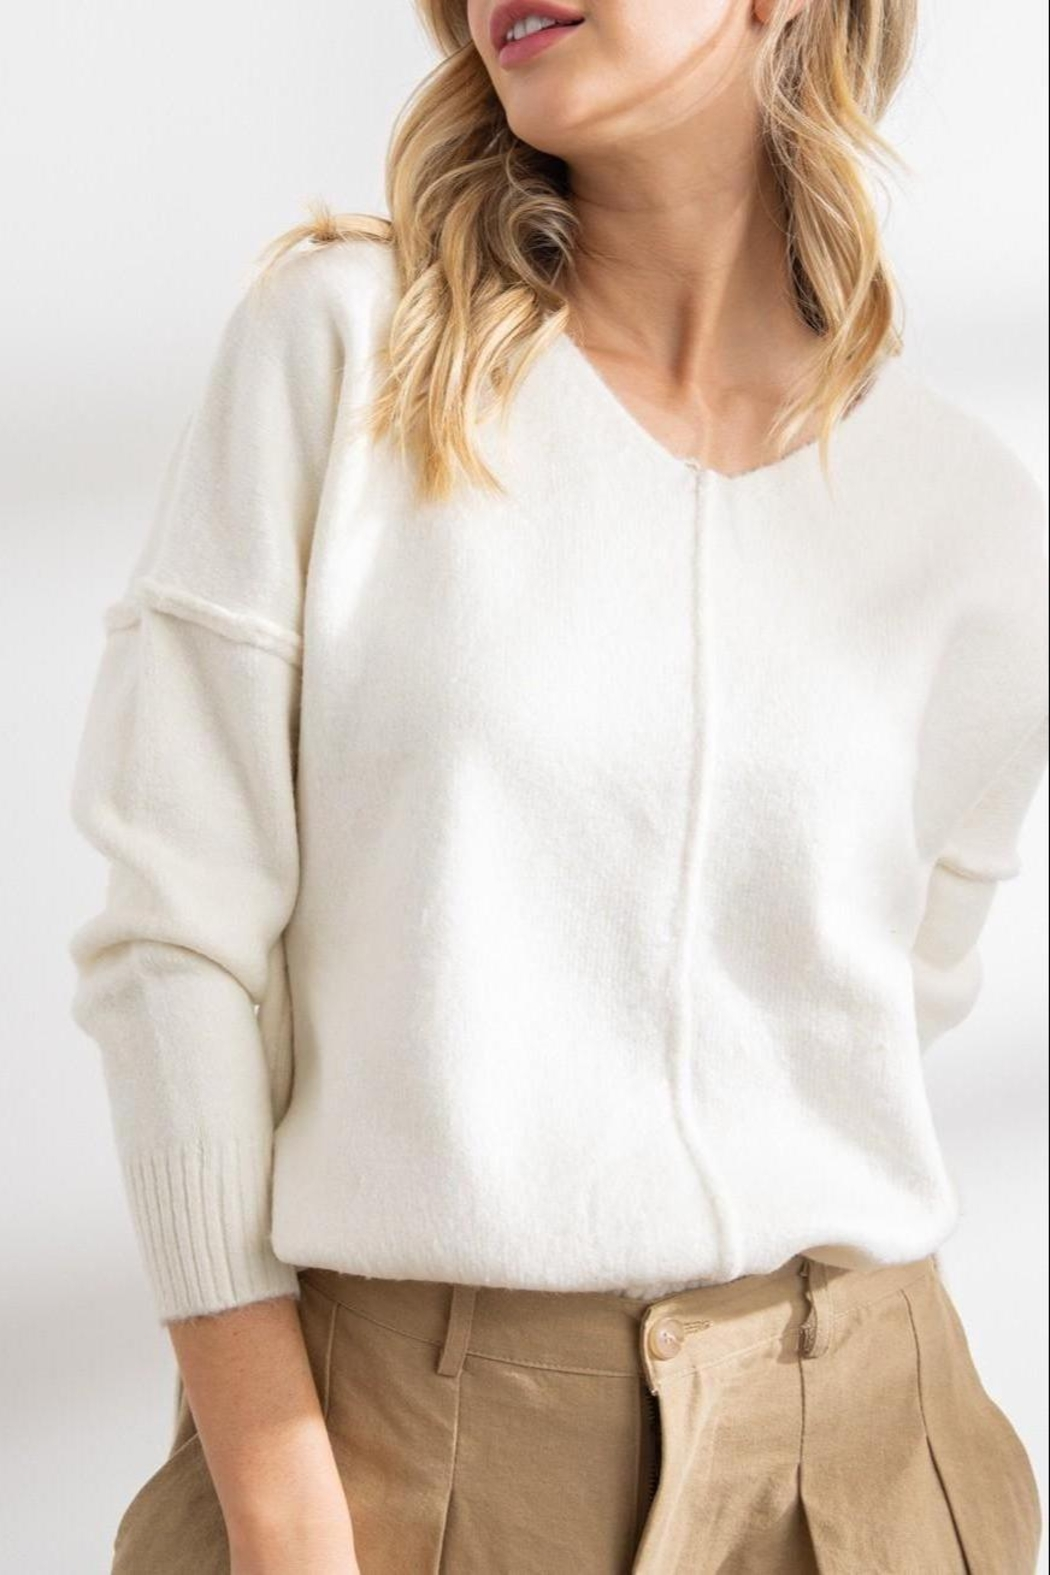 Papermoon Clothing Celine Soft Seam Sweater In Ivory - Main Image